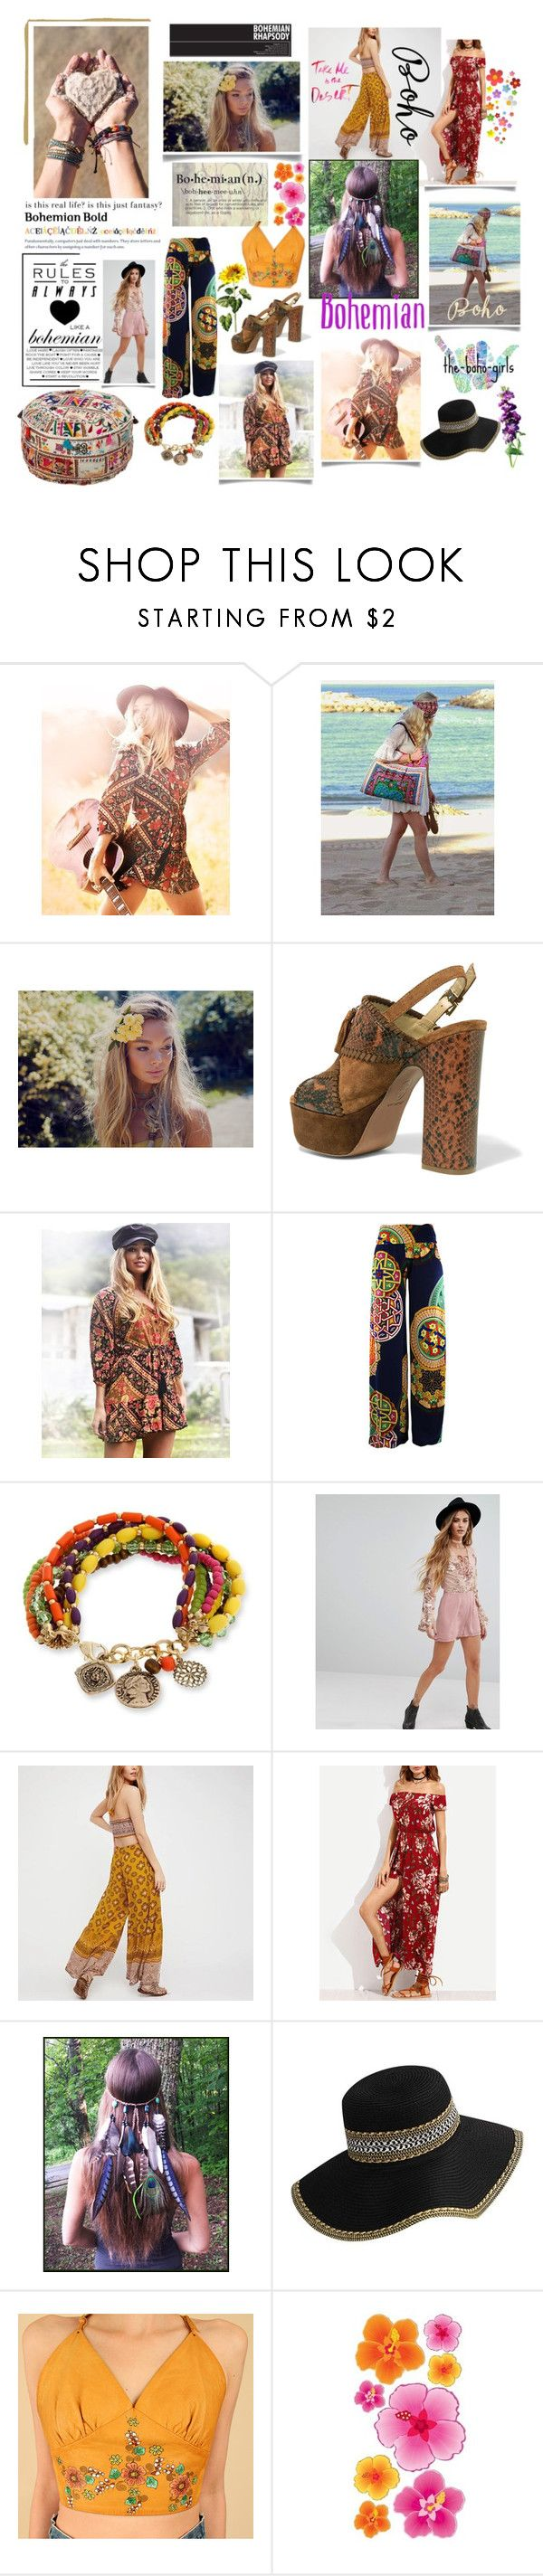 """Bohemian is my lifestyle 💜💐"" by lawvel ❤ liked on Polyvore featuring Ash, Erica Lyons, Young Bohemians and WithChic"